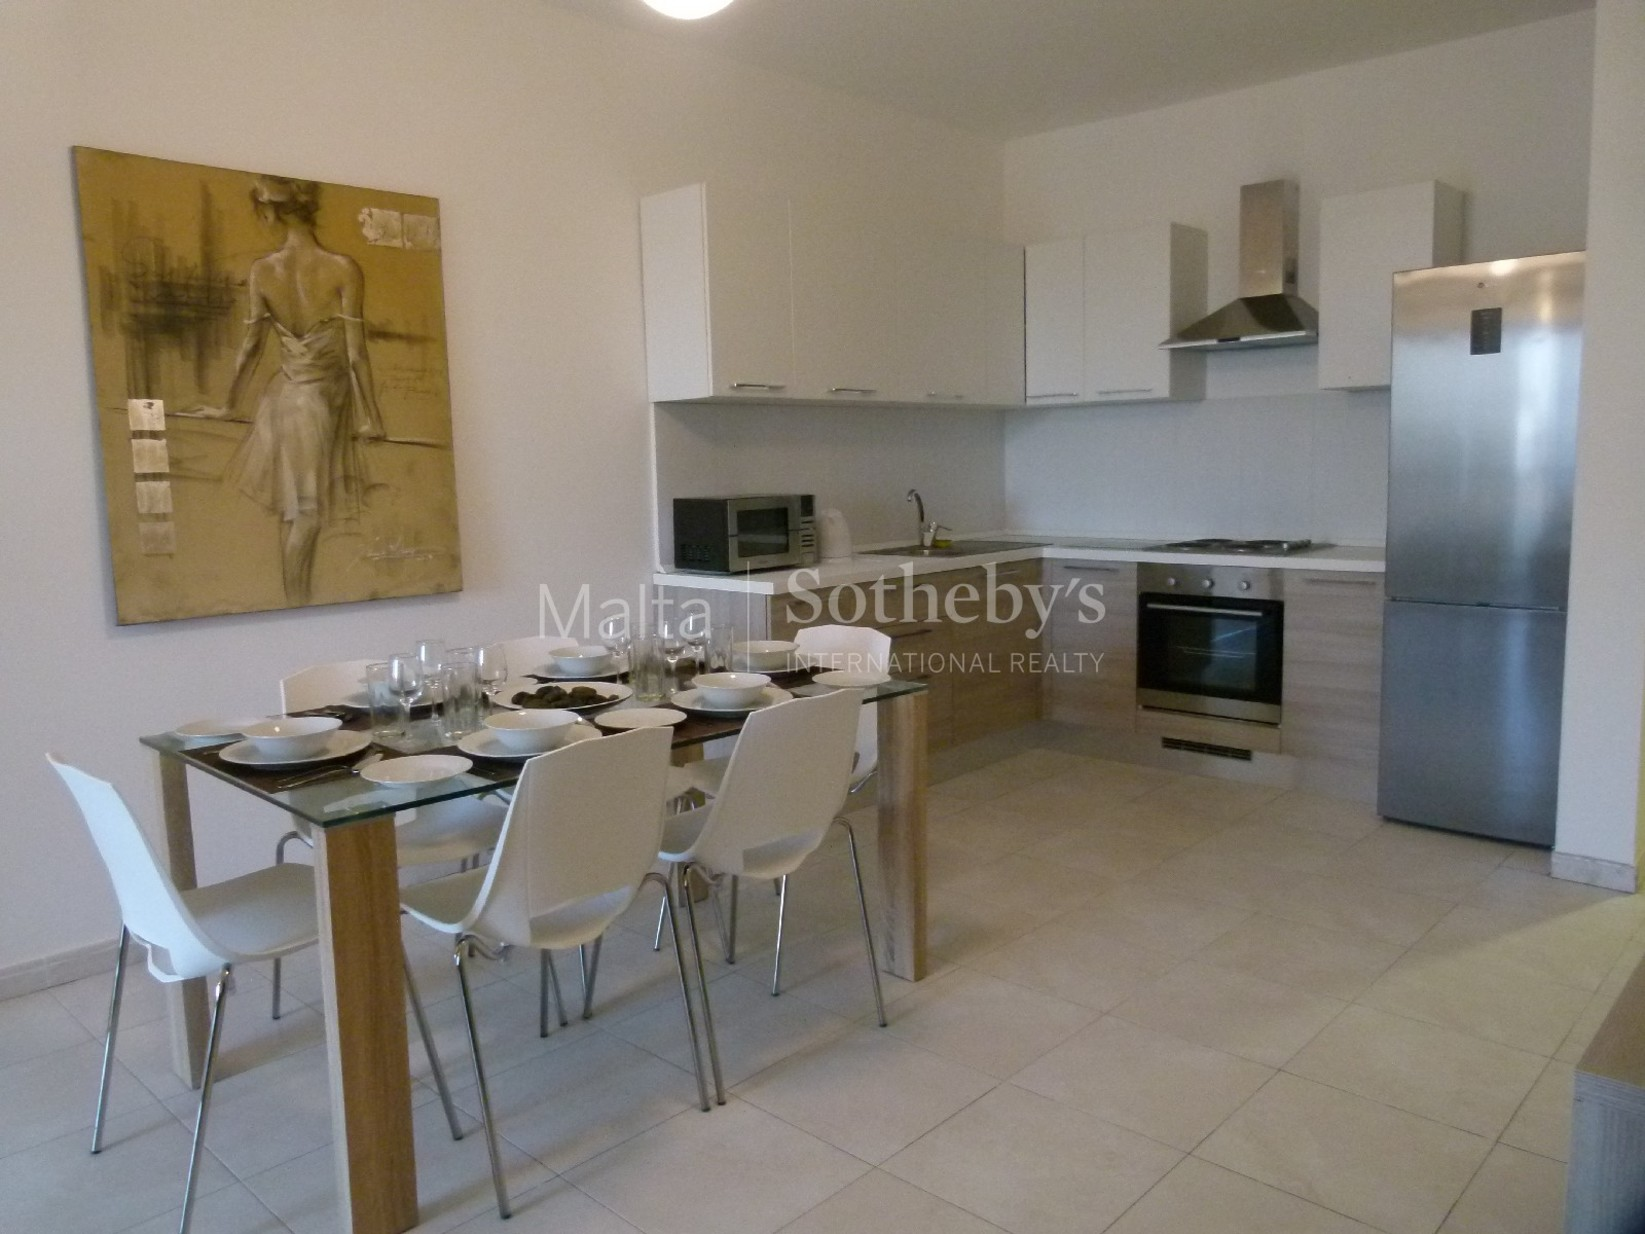 4 bed Apartment For Rent in Ibragg, Ibragg - thumb 3